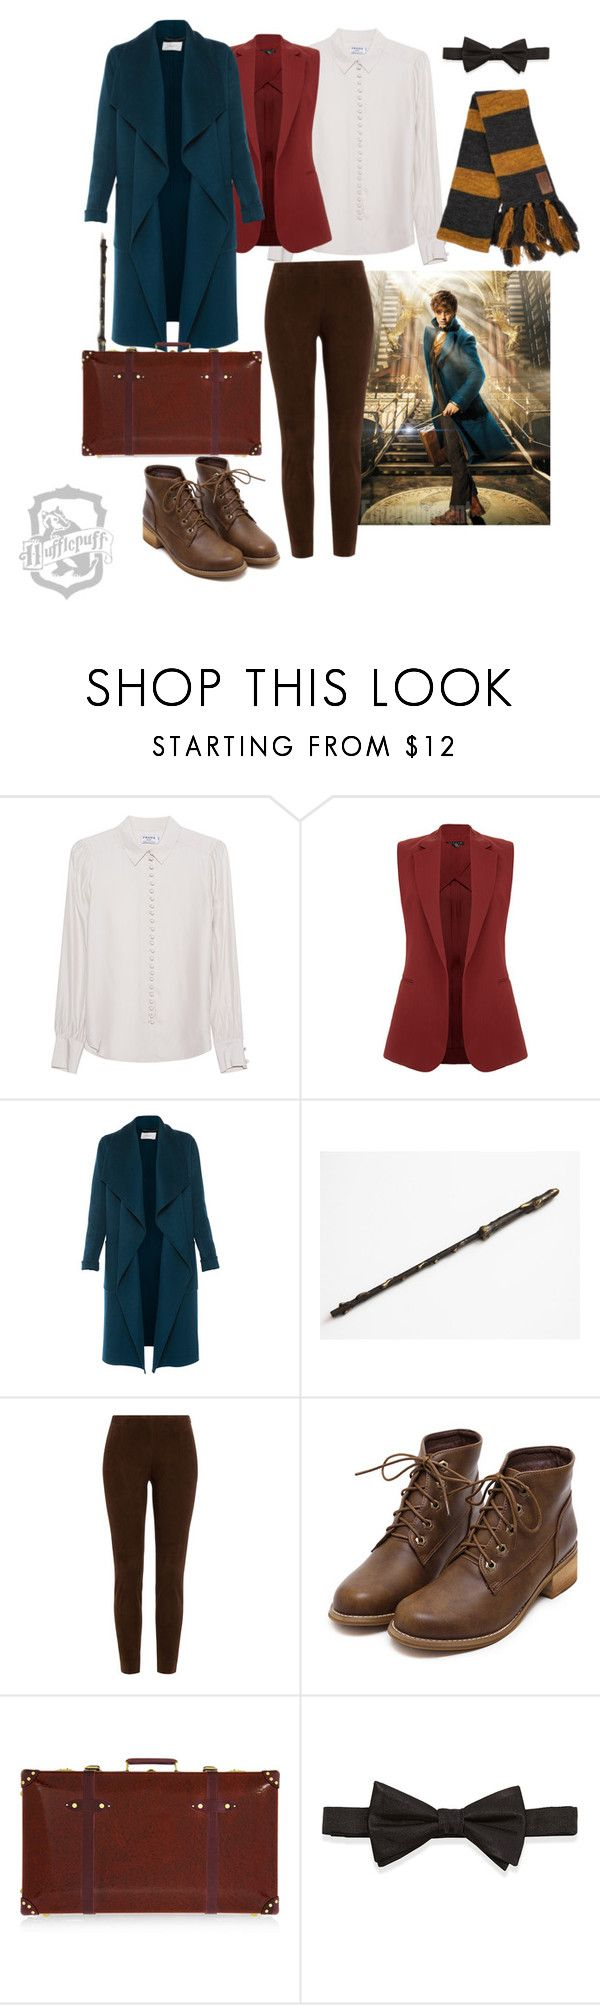 """Fantastic beasts and where to find them - Newt - Hufflepuff"" by dariaamethyst ❤ liked on Polyvore featuring Frame, Theory, L.K.Bennett, Ralph Lauren Black Label, Globe-Trotter and Neiman Marcus"